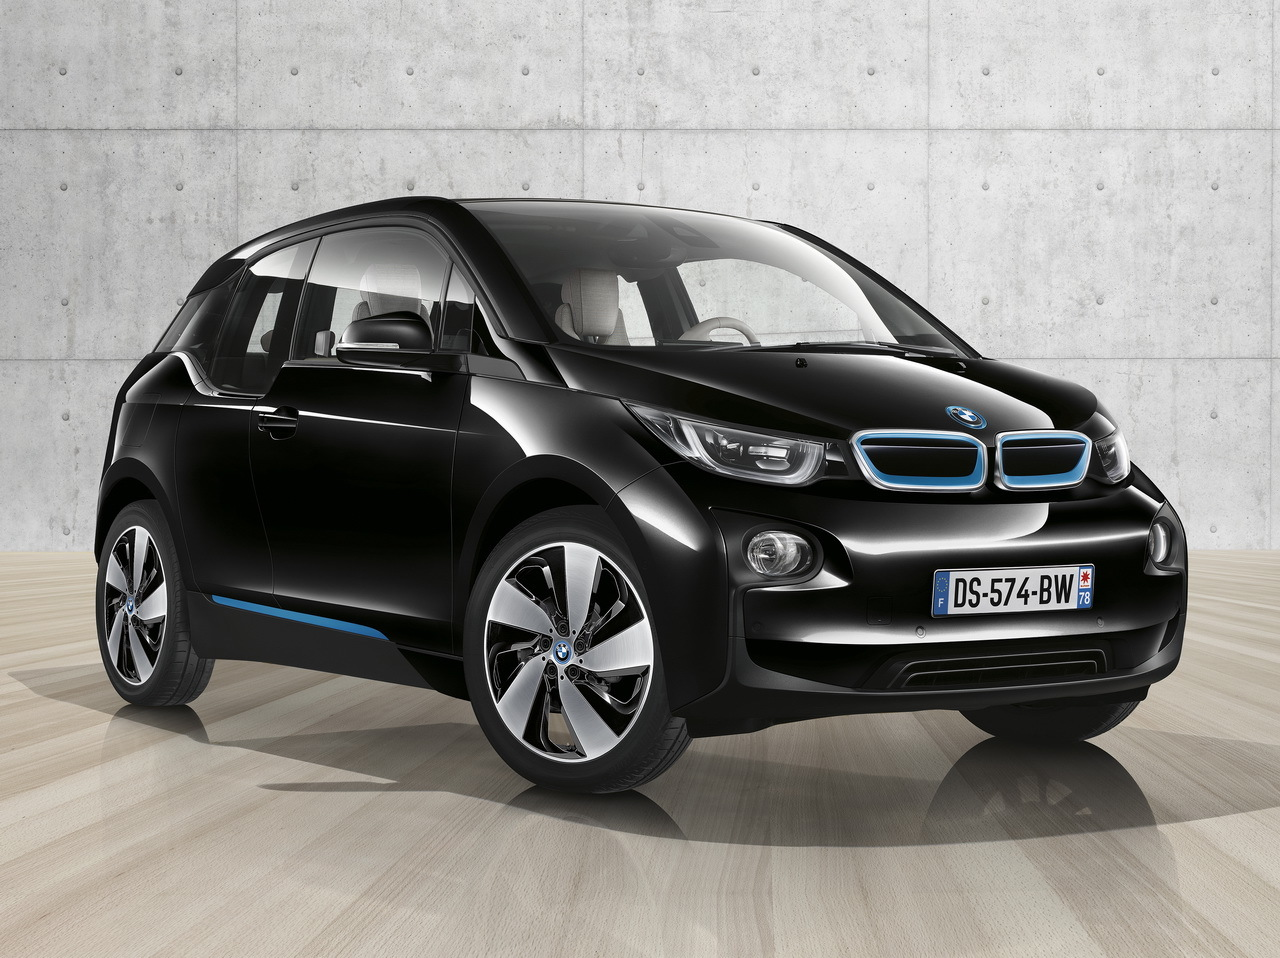 bmw i3 black edition une s rie sp ciale pour la bmw lectrique l 39 argus. Black Bedroom Furniture Sets. Home Design Ideas